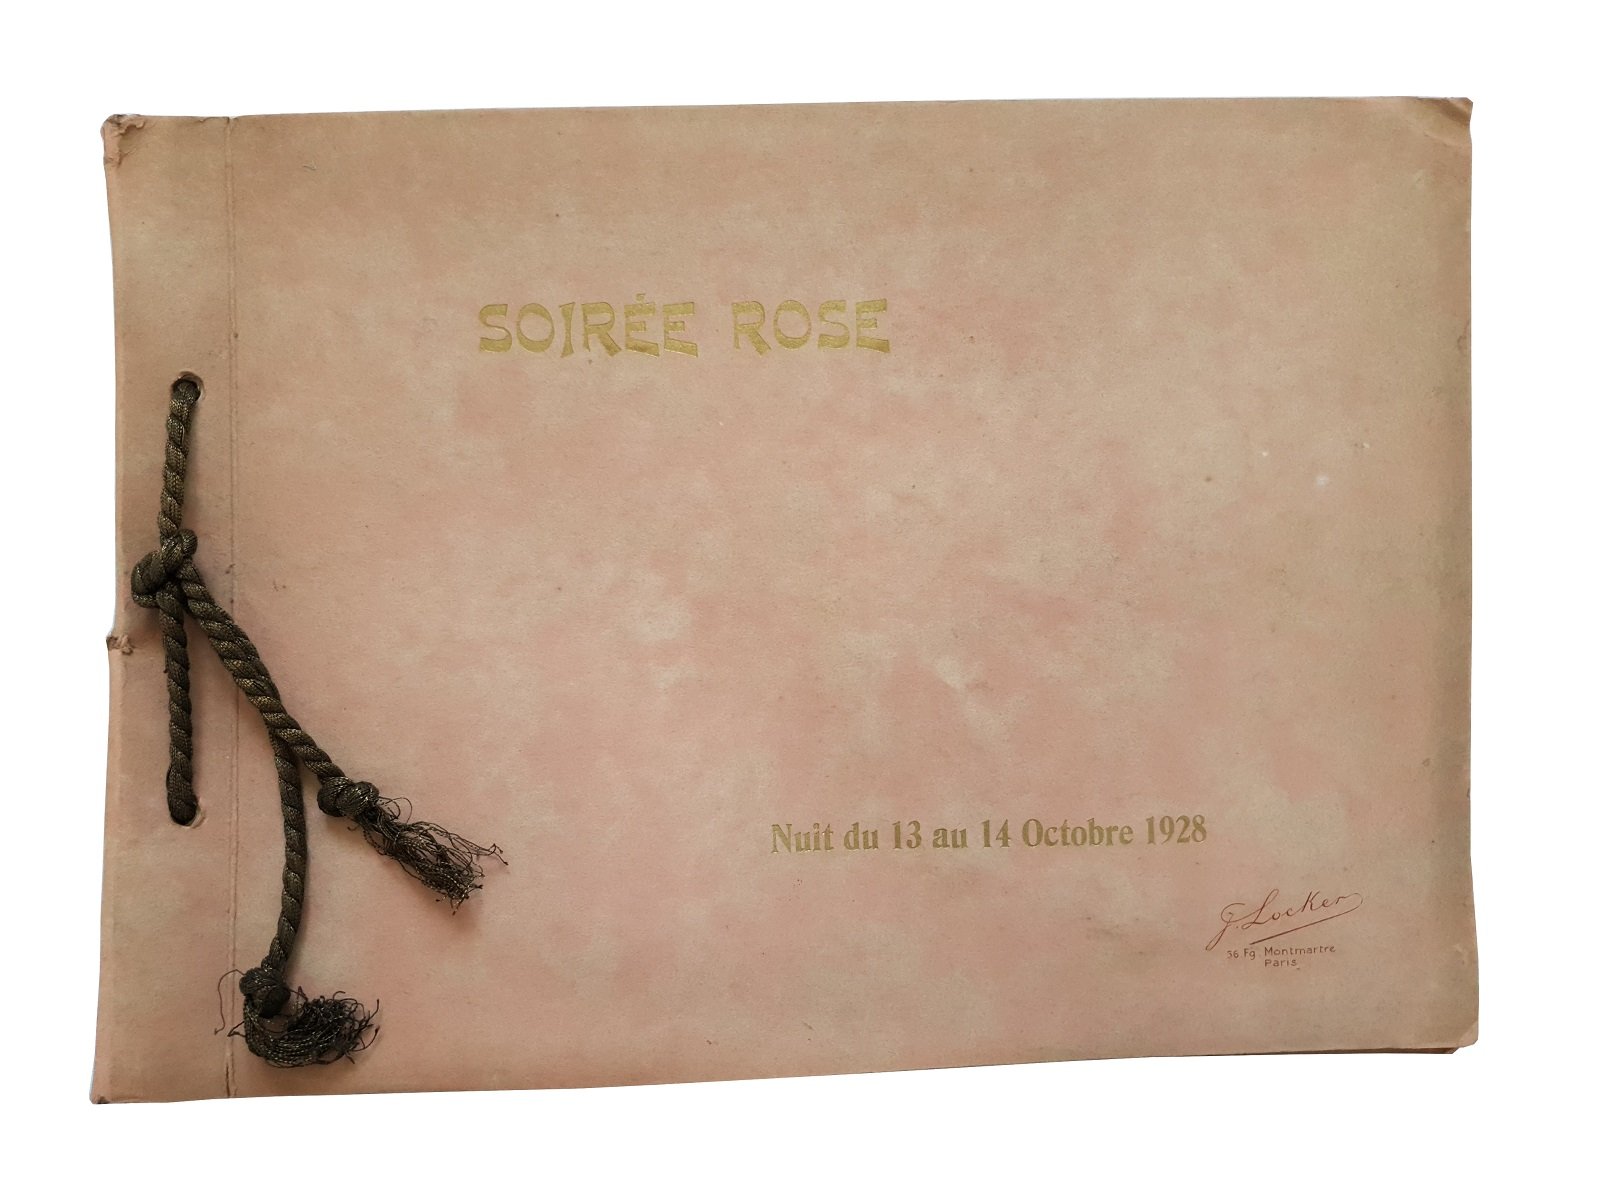 Soiree Rose. A photograph album documenting a 1928 Parisian party hosted by Paul Dreyfus-Rose